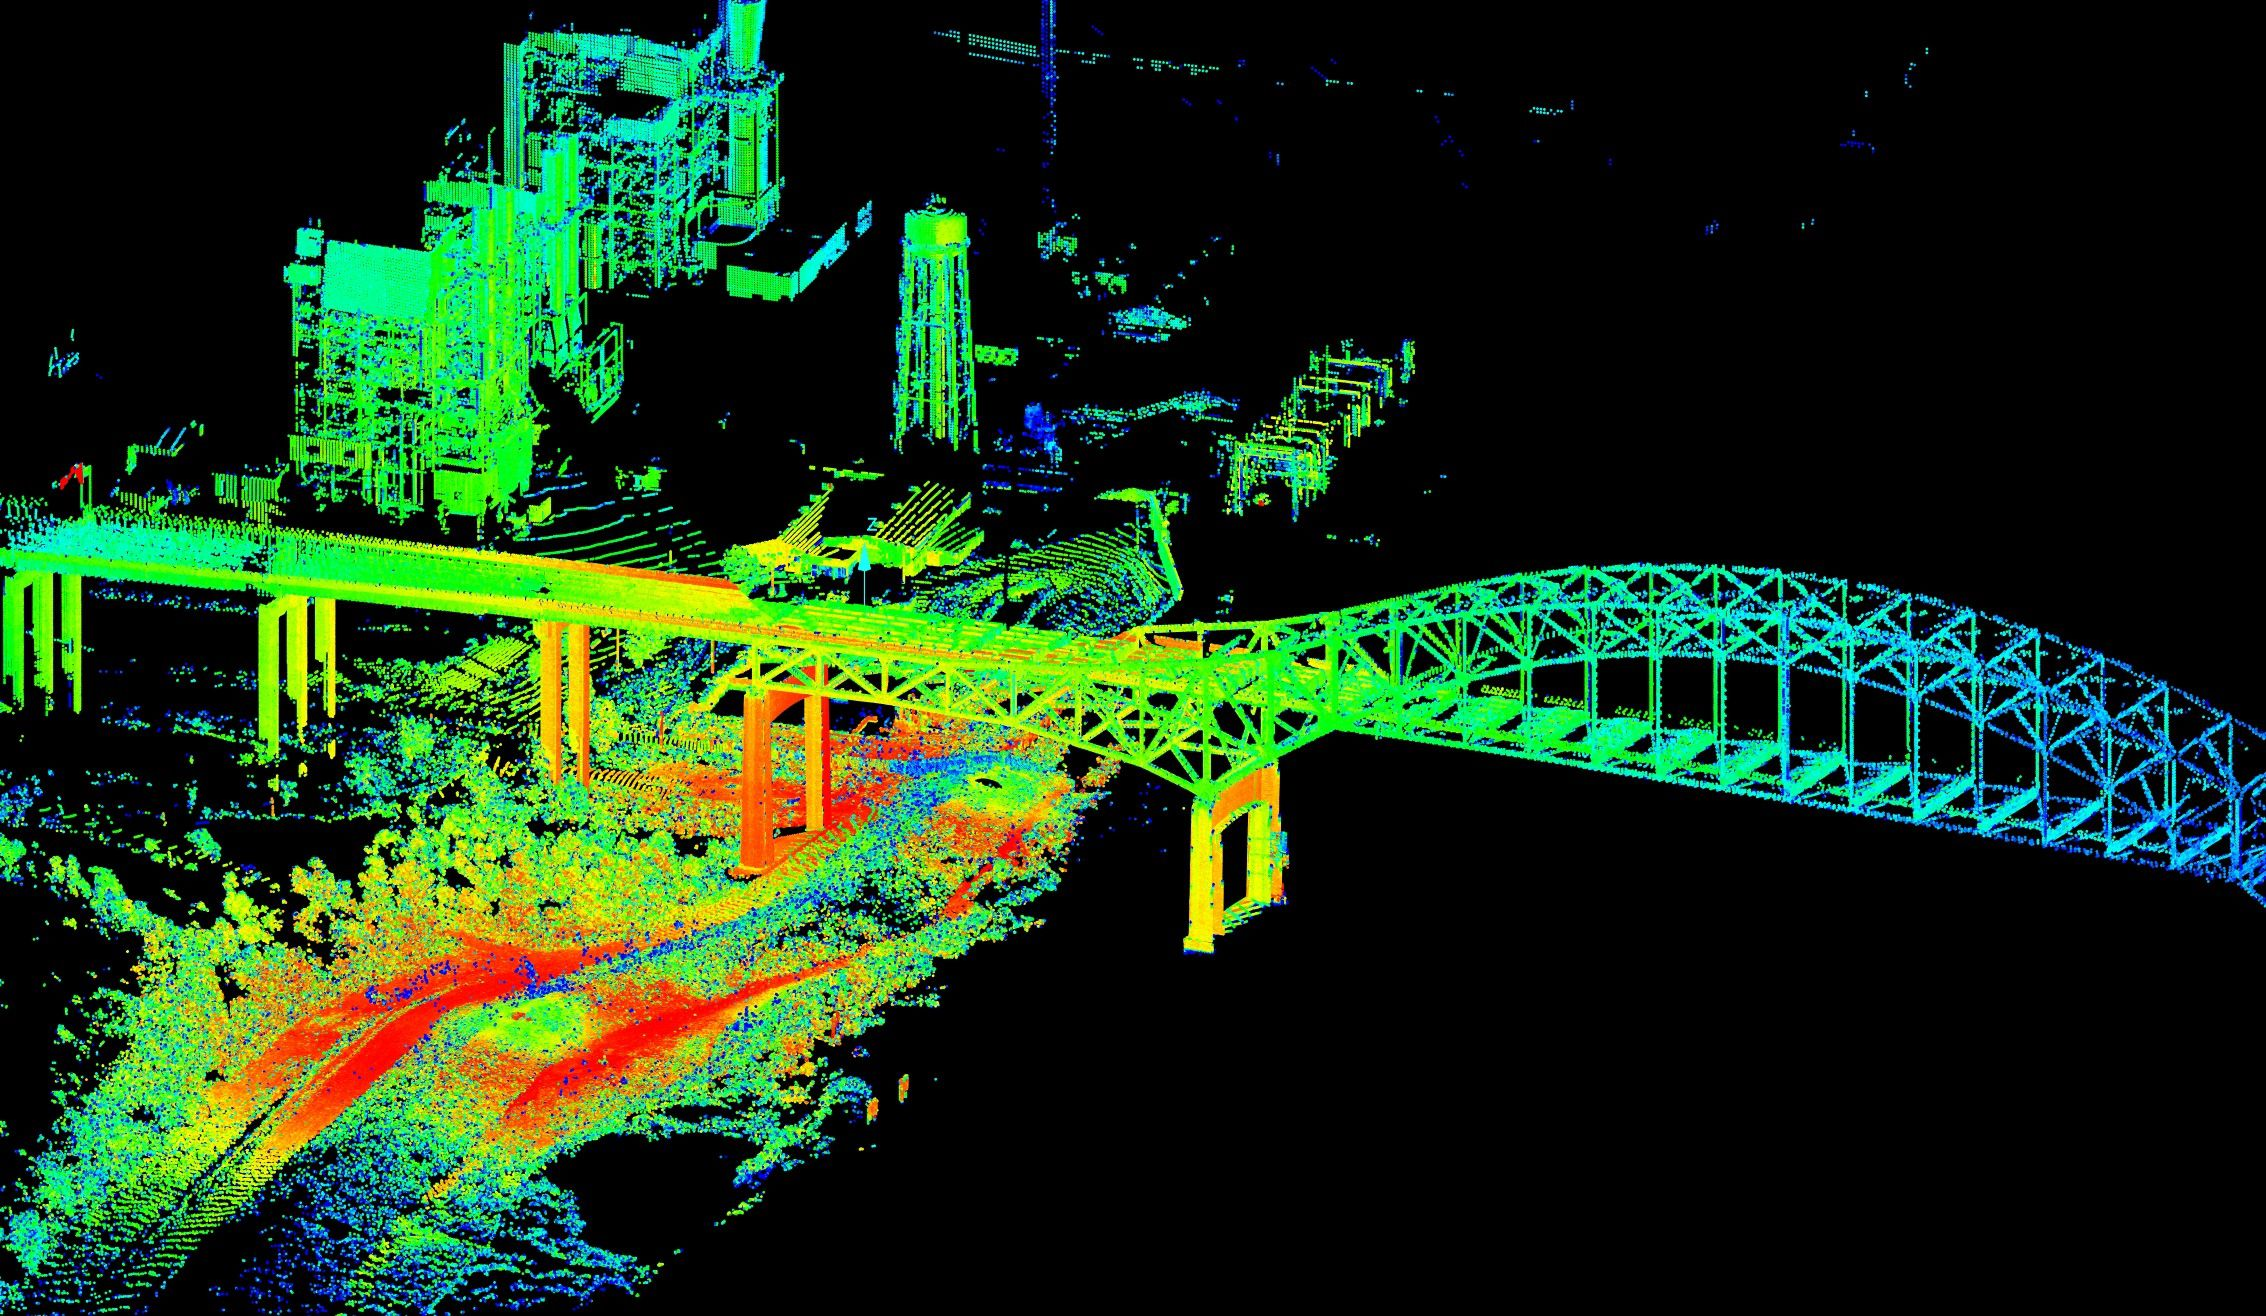 Terrestrial Lidar Software (Photo : LiDAR)